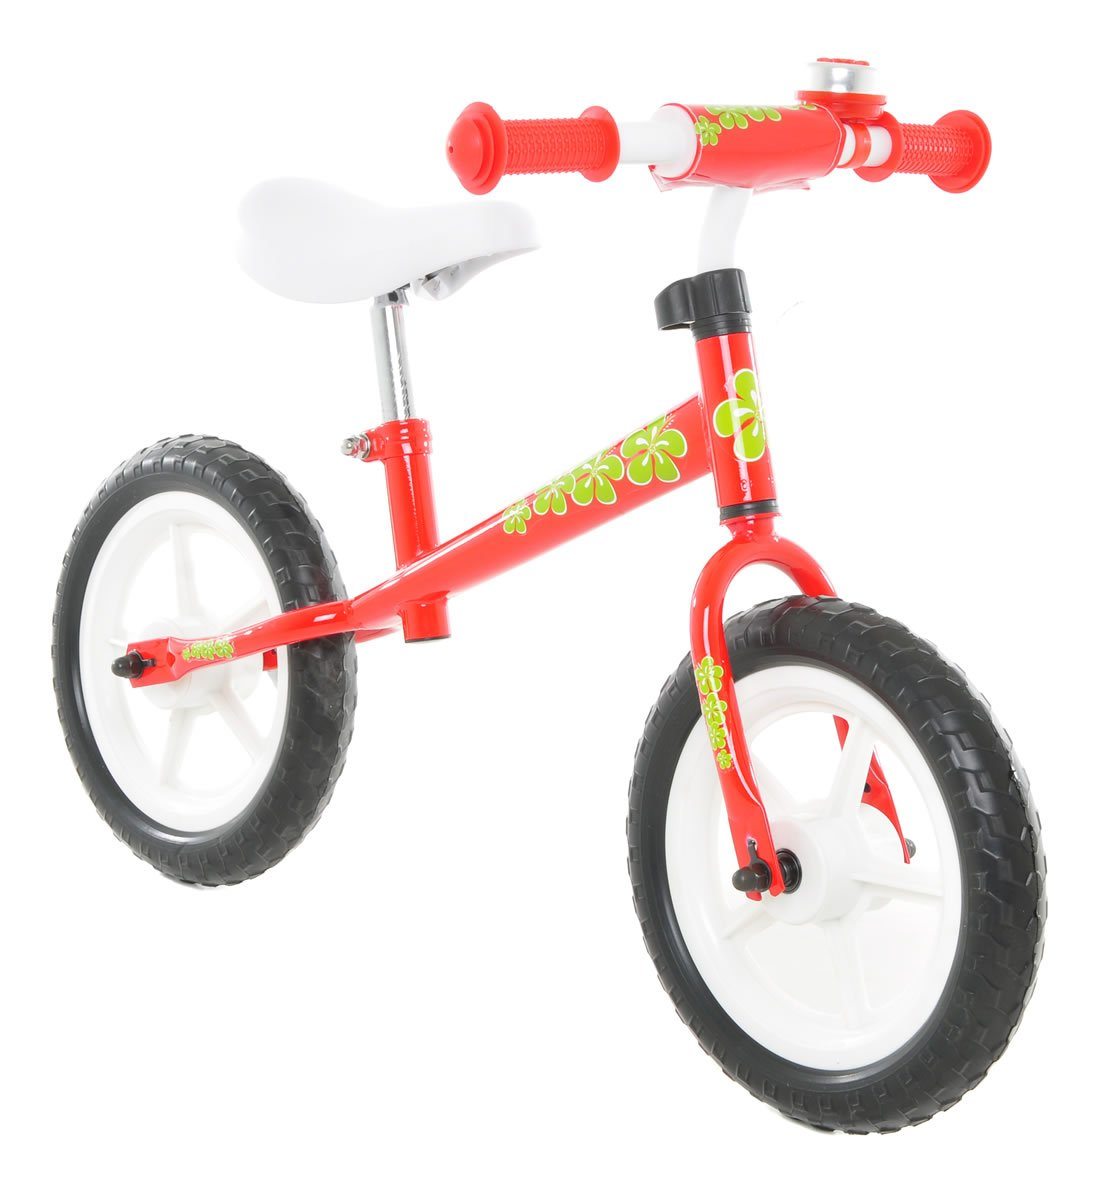 Vilano No Pedal Push Balance Bicycle for Children, Red by Vilano (Image #1)